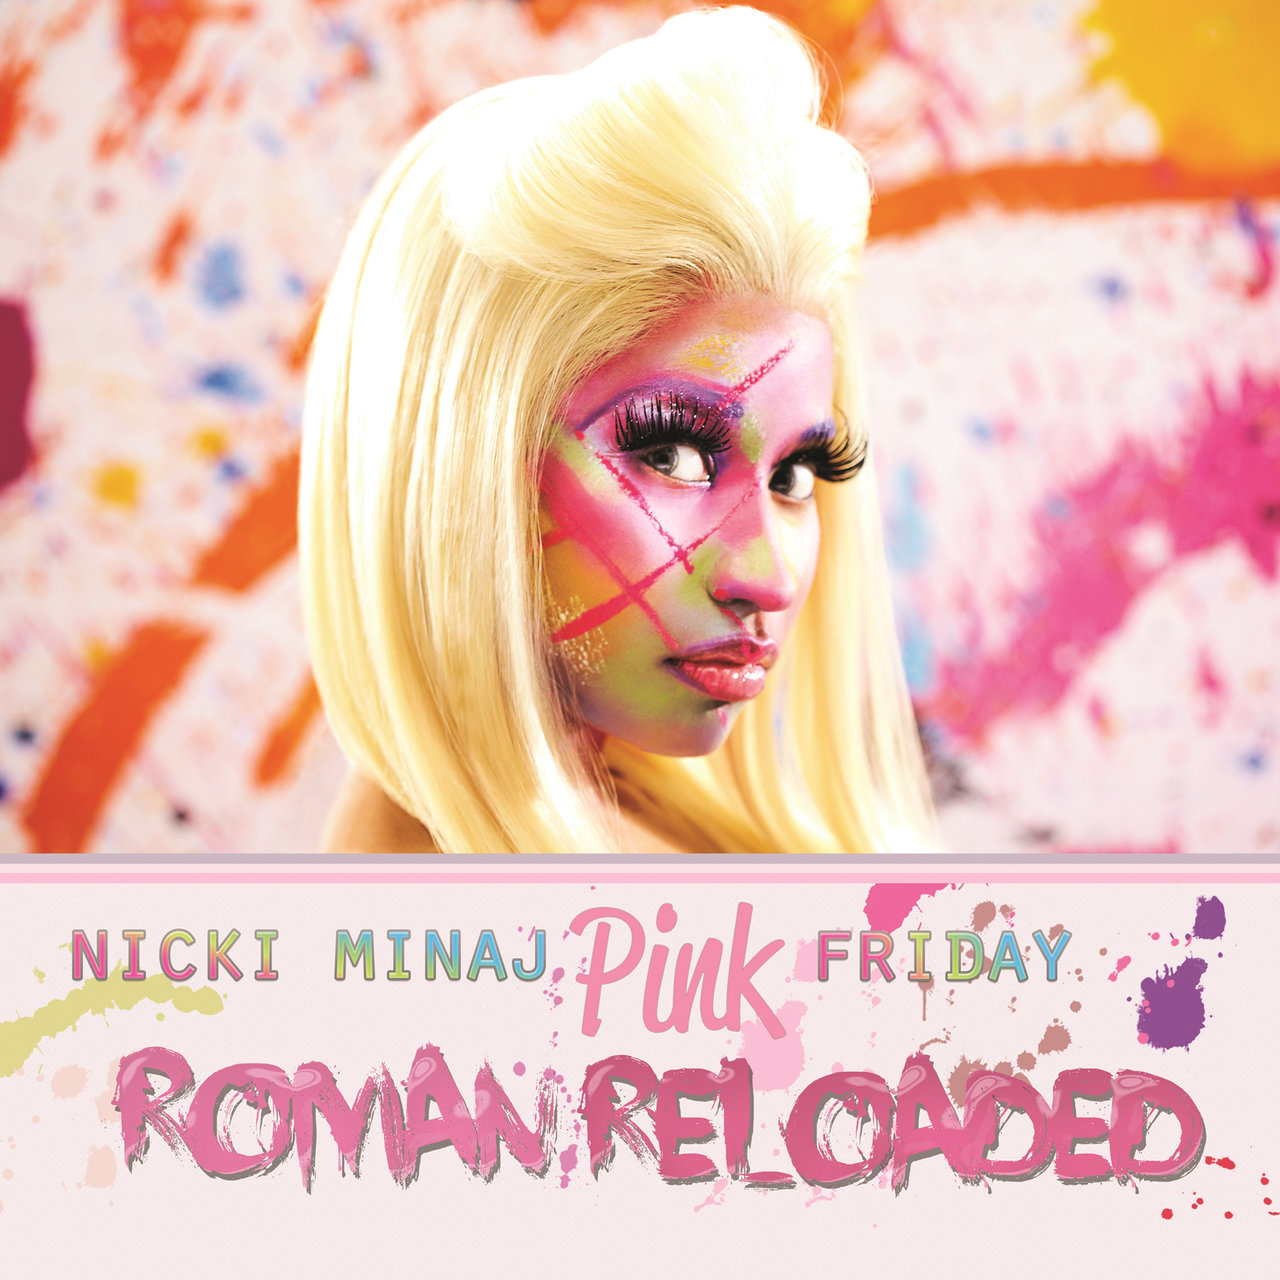 Pink Friday ... Roman Reloaded (Booklet Version)